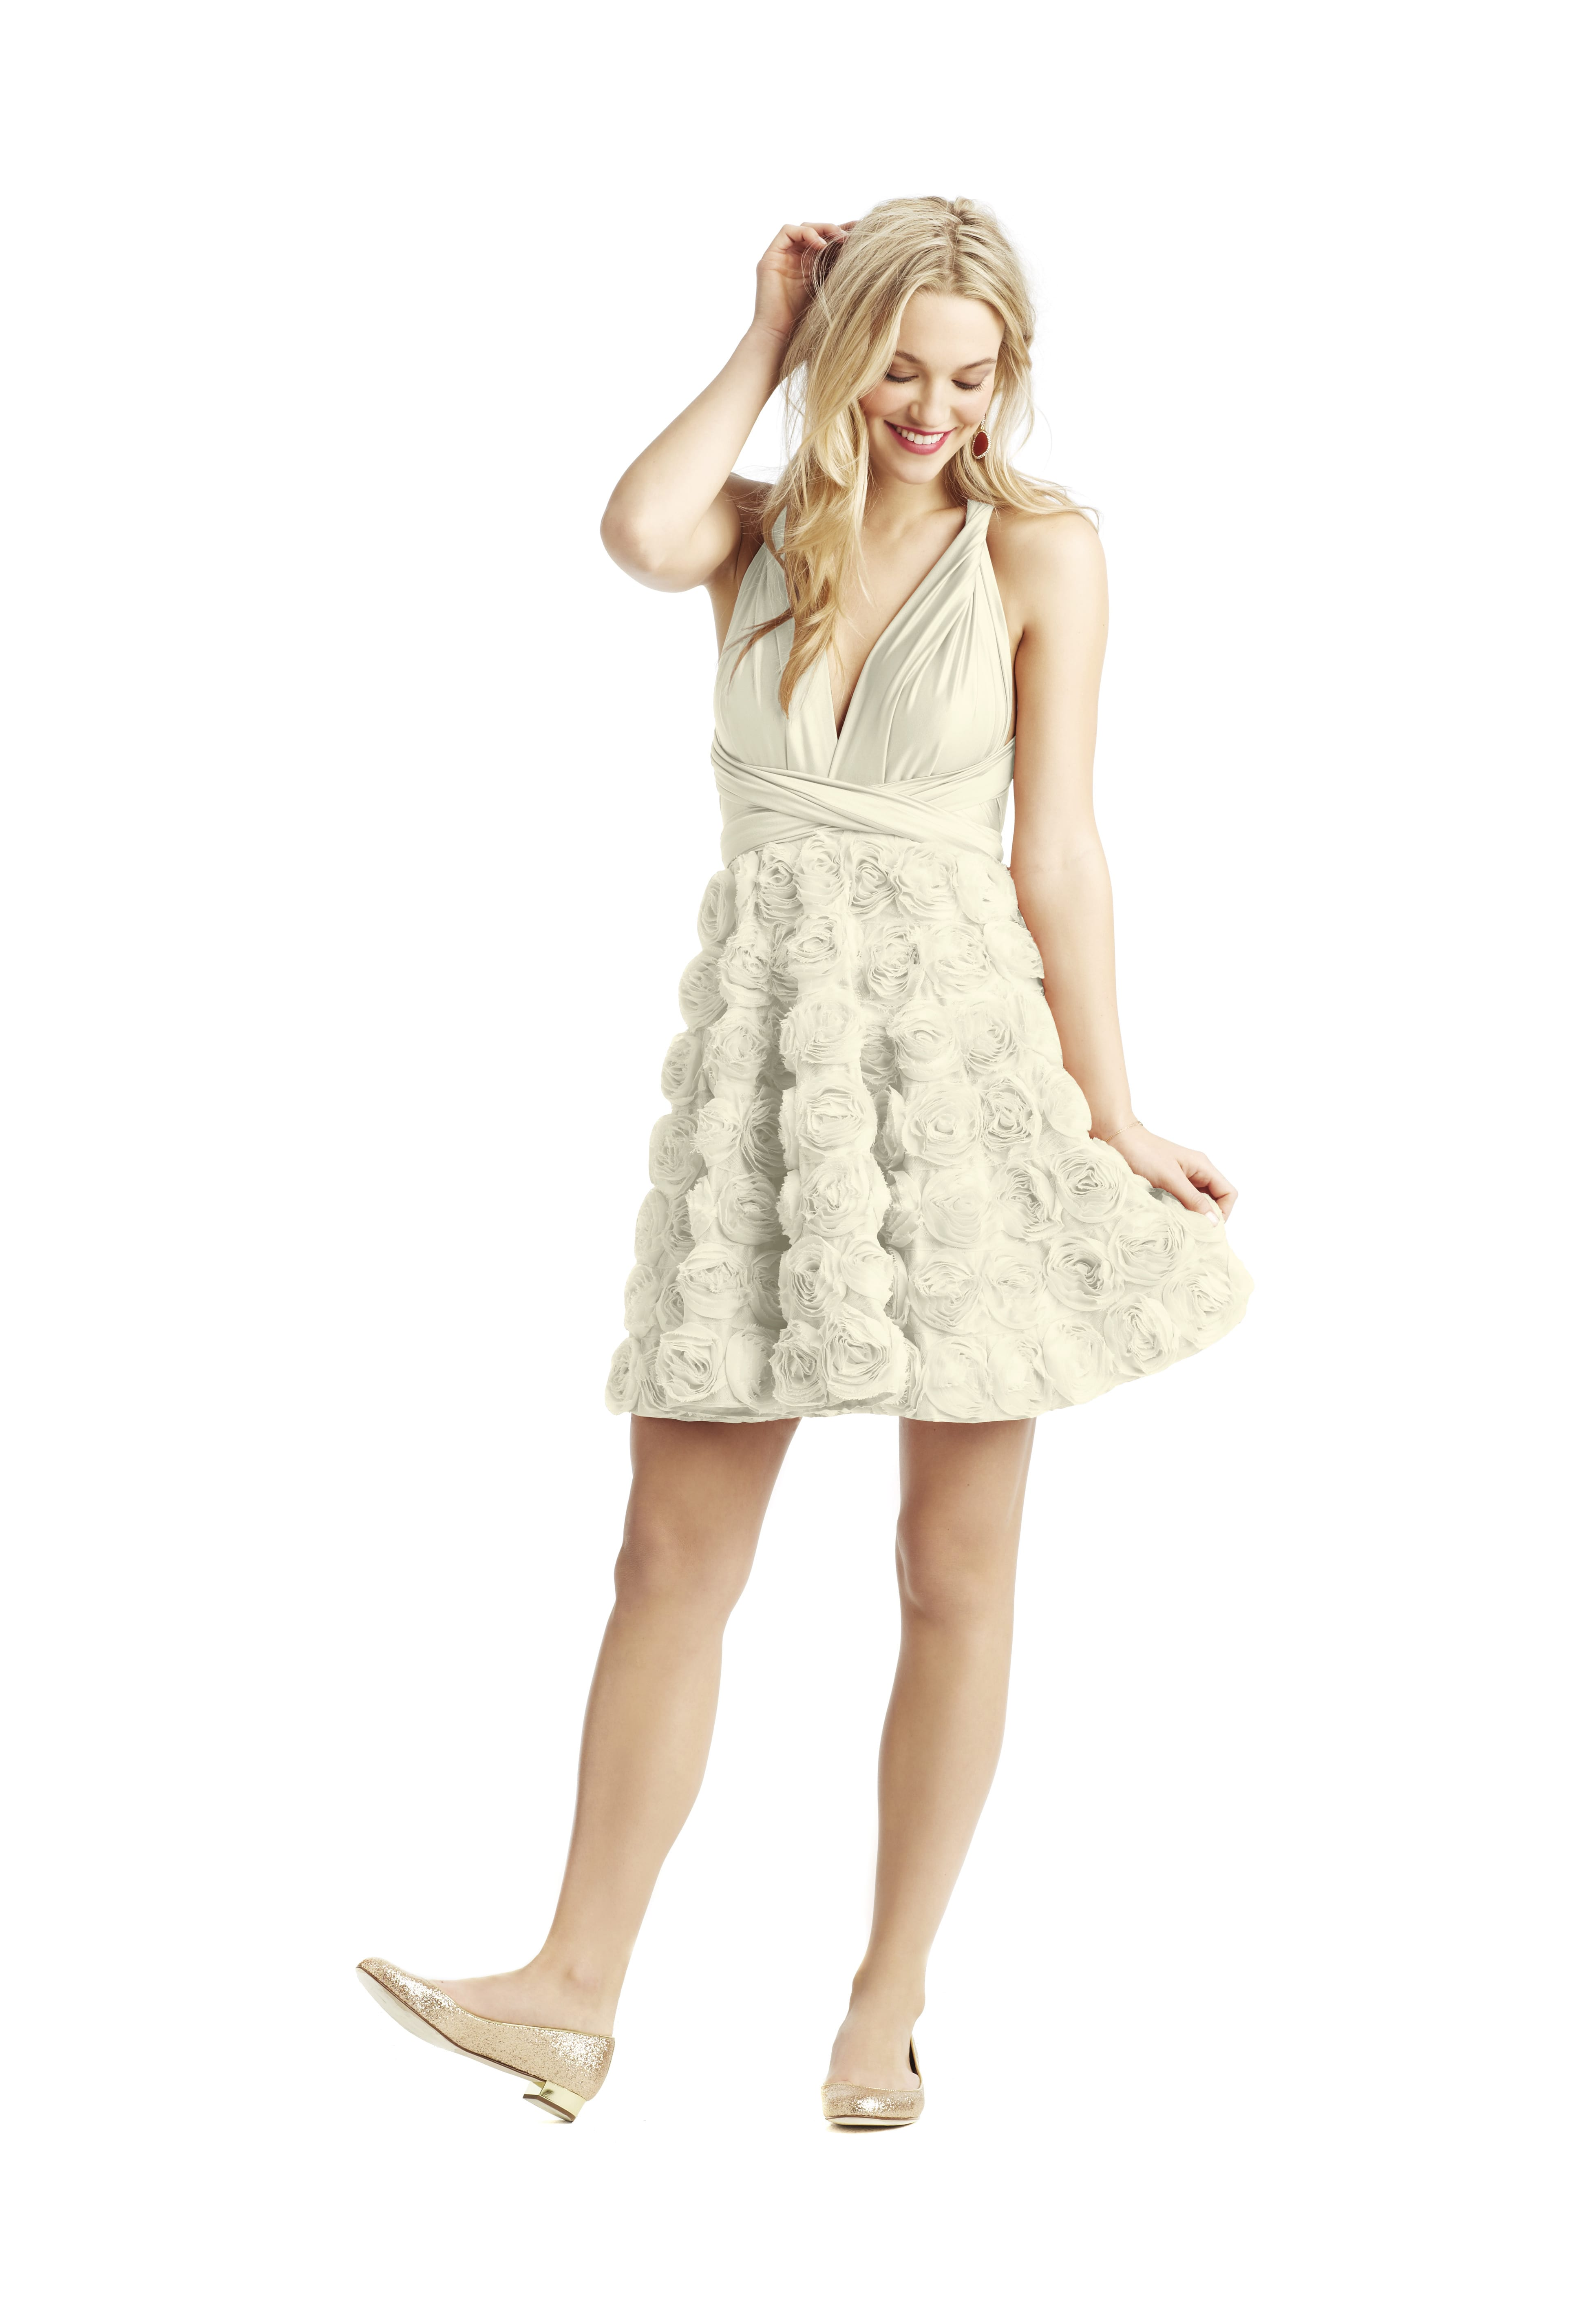 Short White Bridesmaid Dress with Flowered Skirt from Twobirds